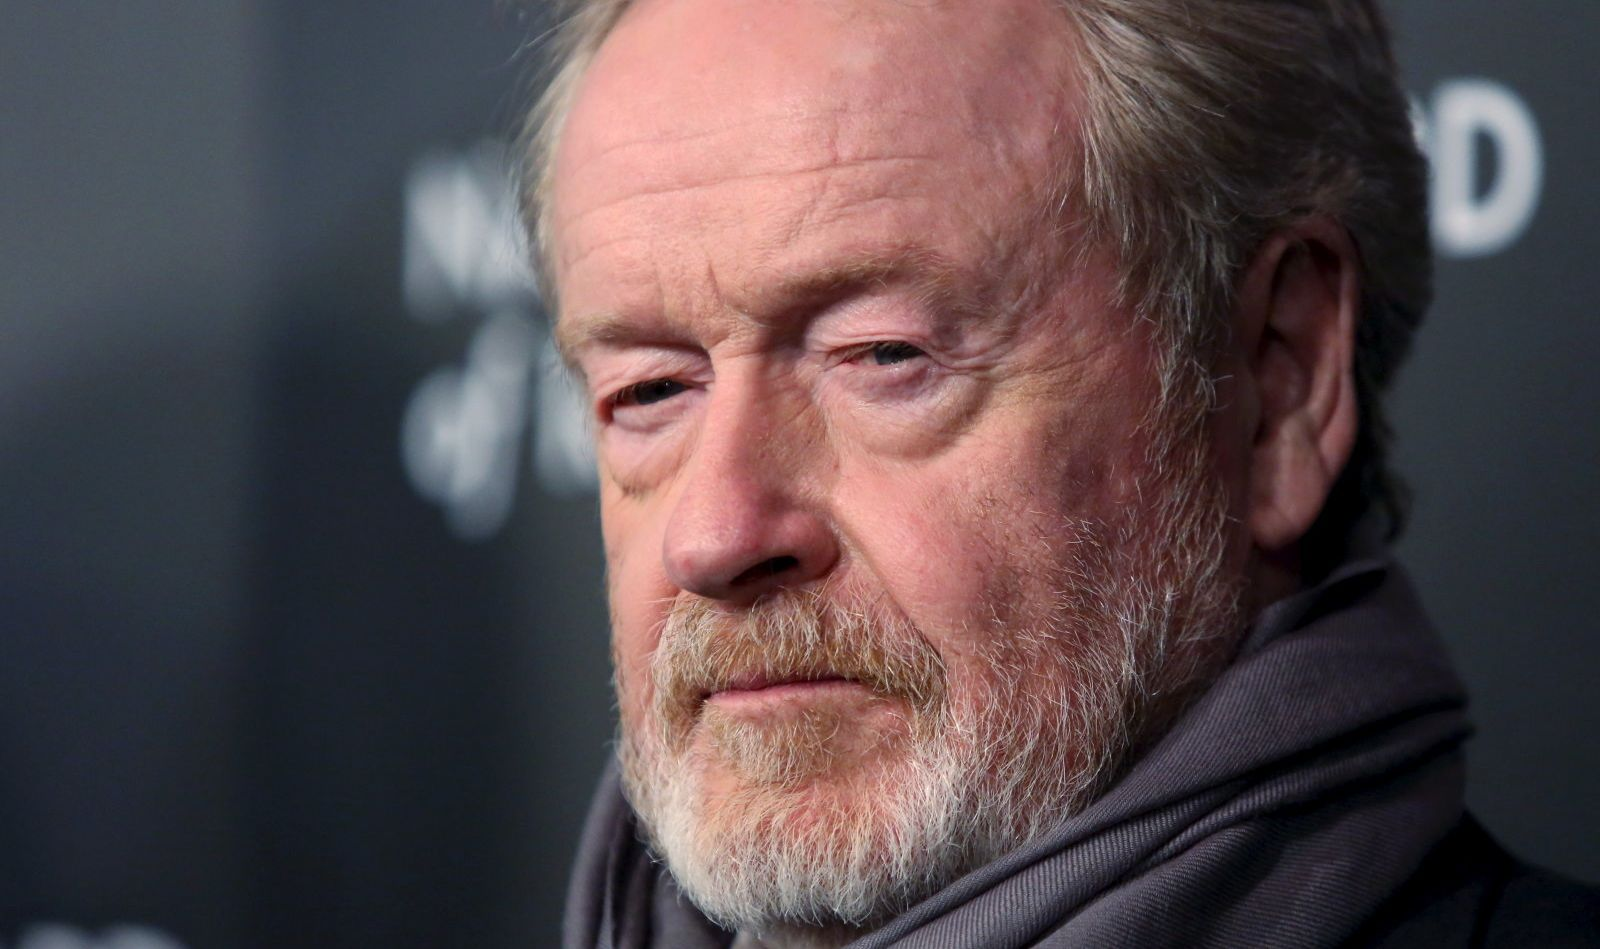 Director Ridley Scott is seriously interested in VR technologies